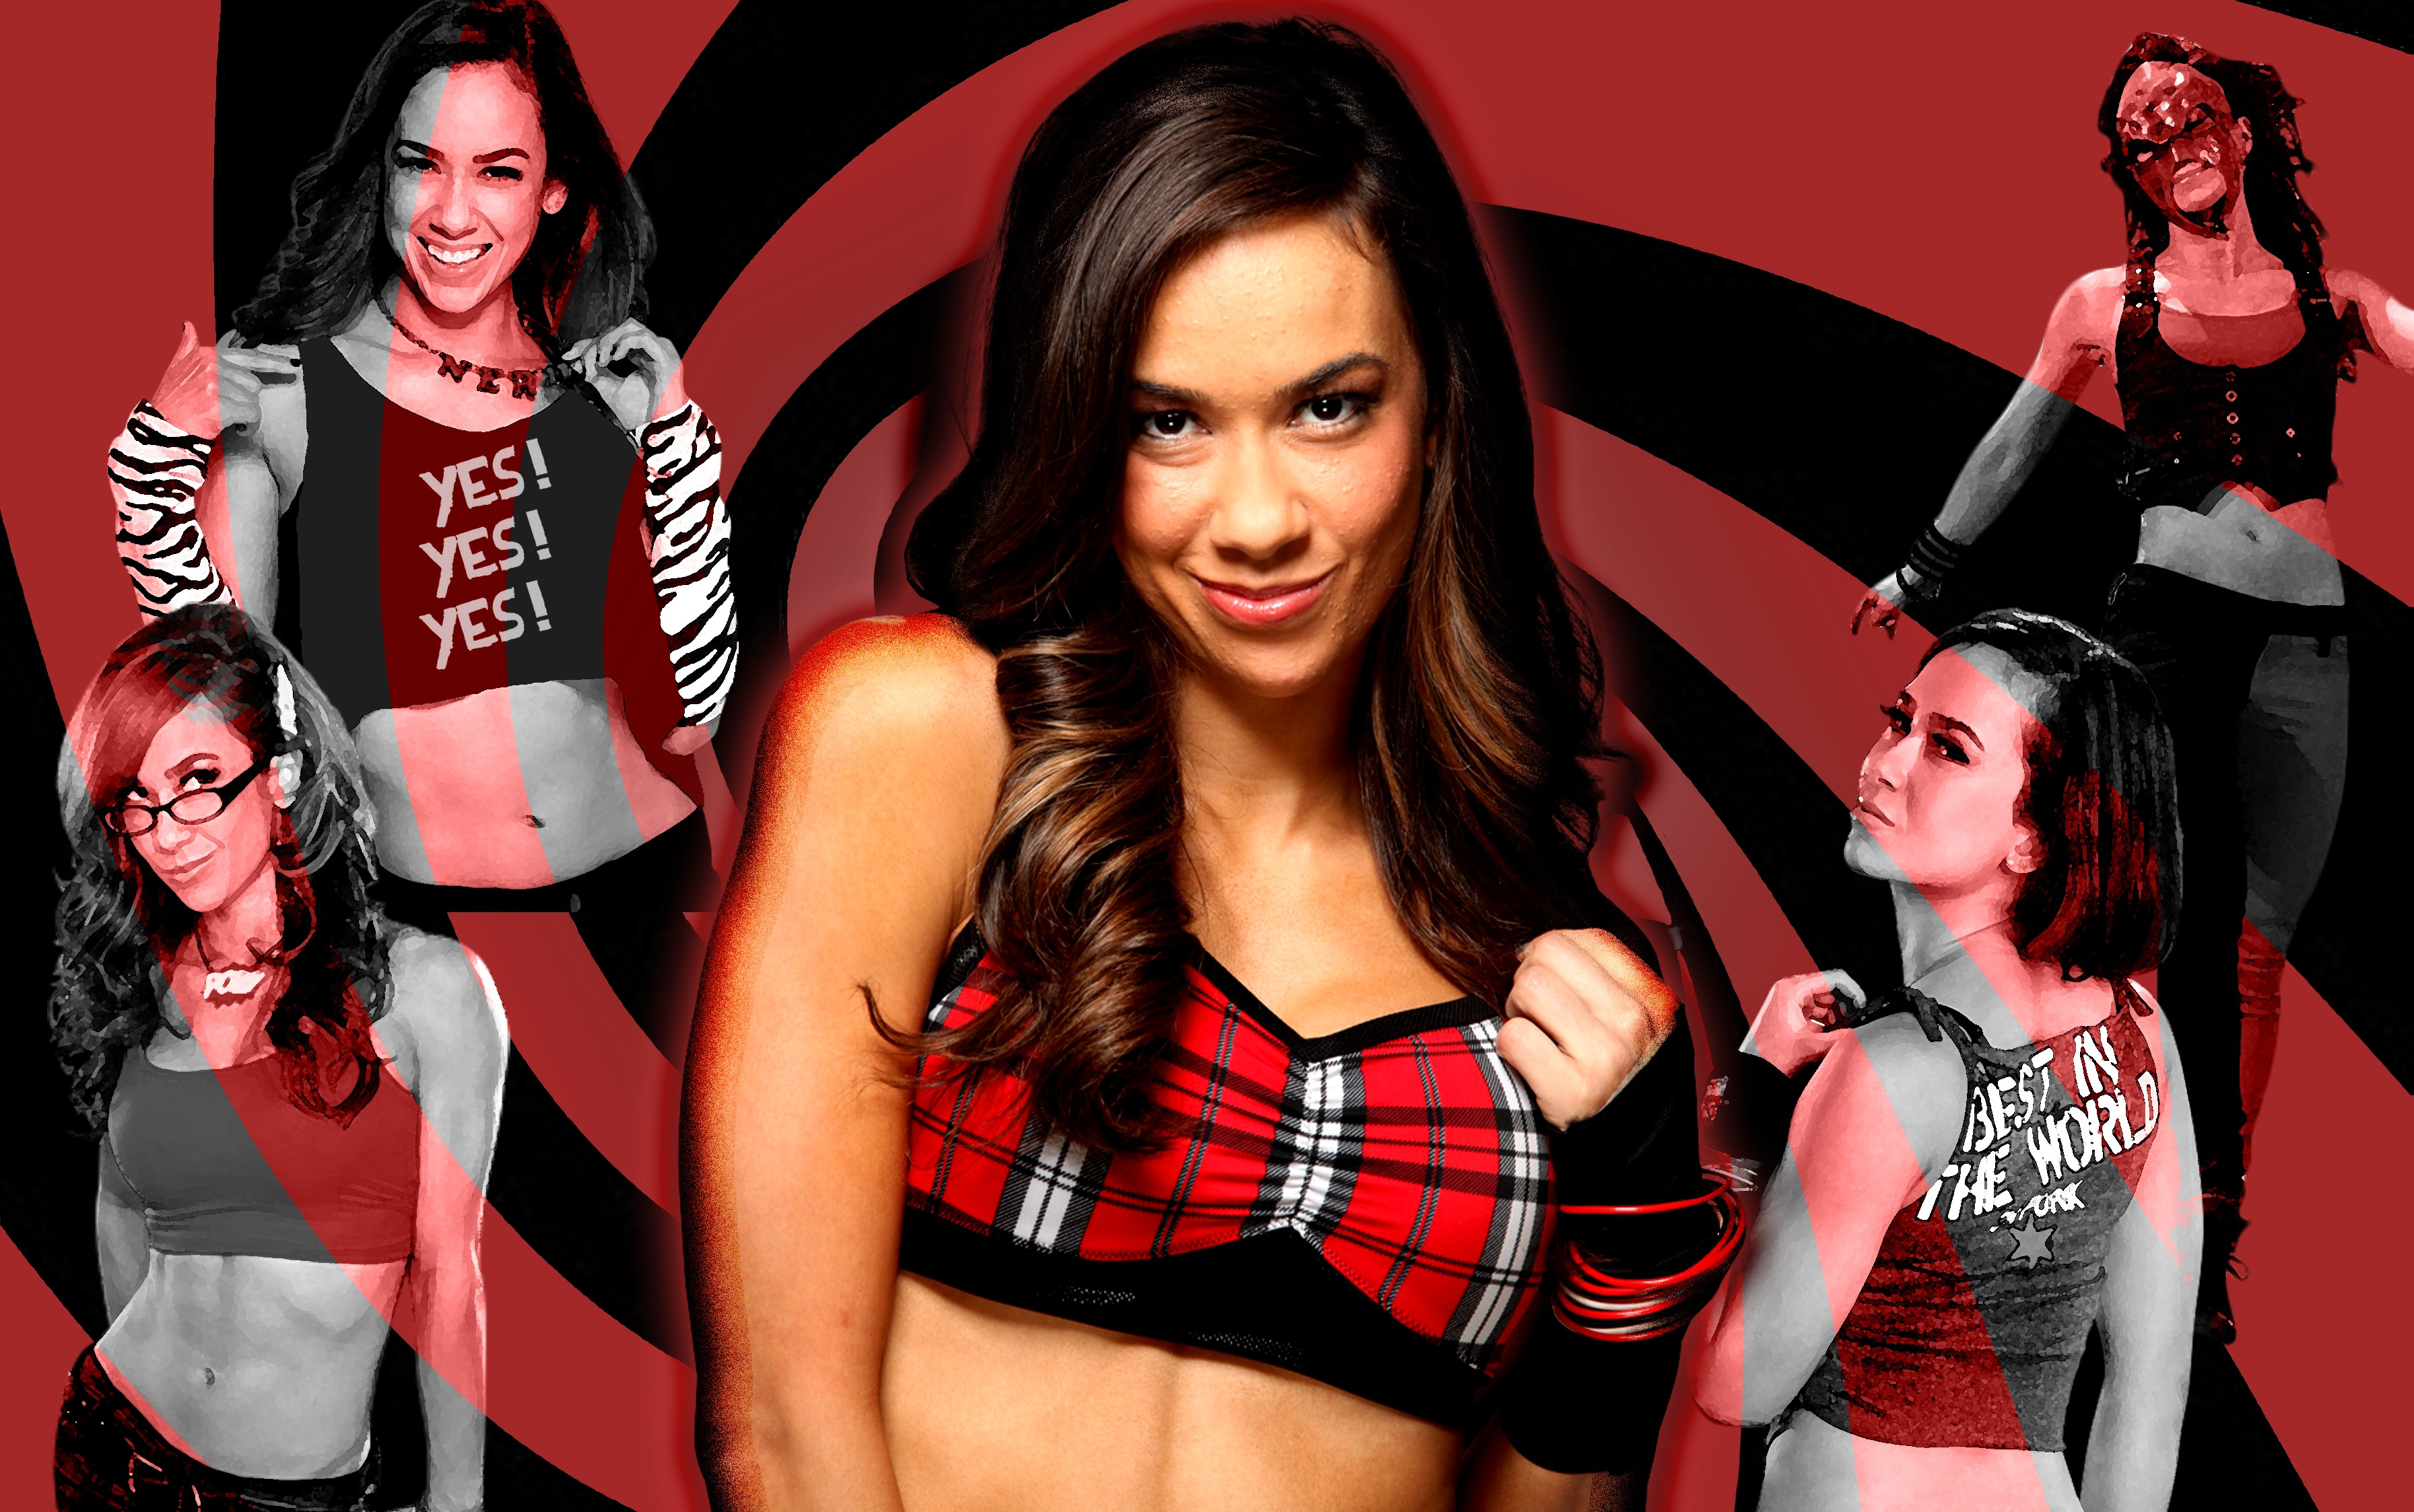 aj lee website